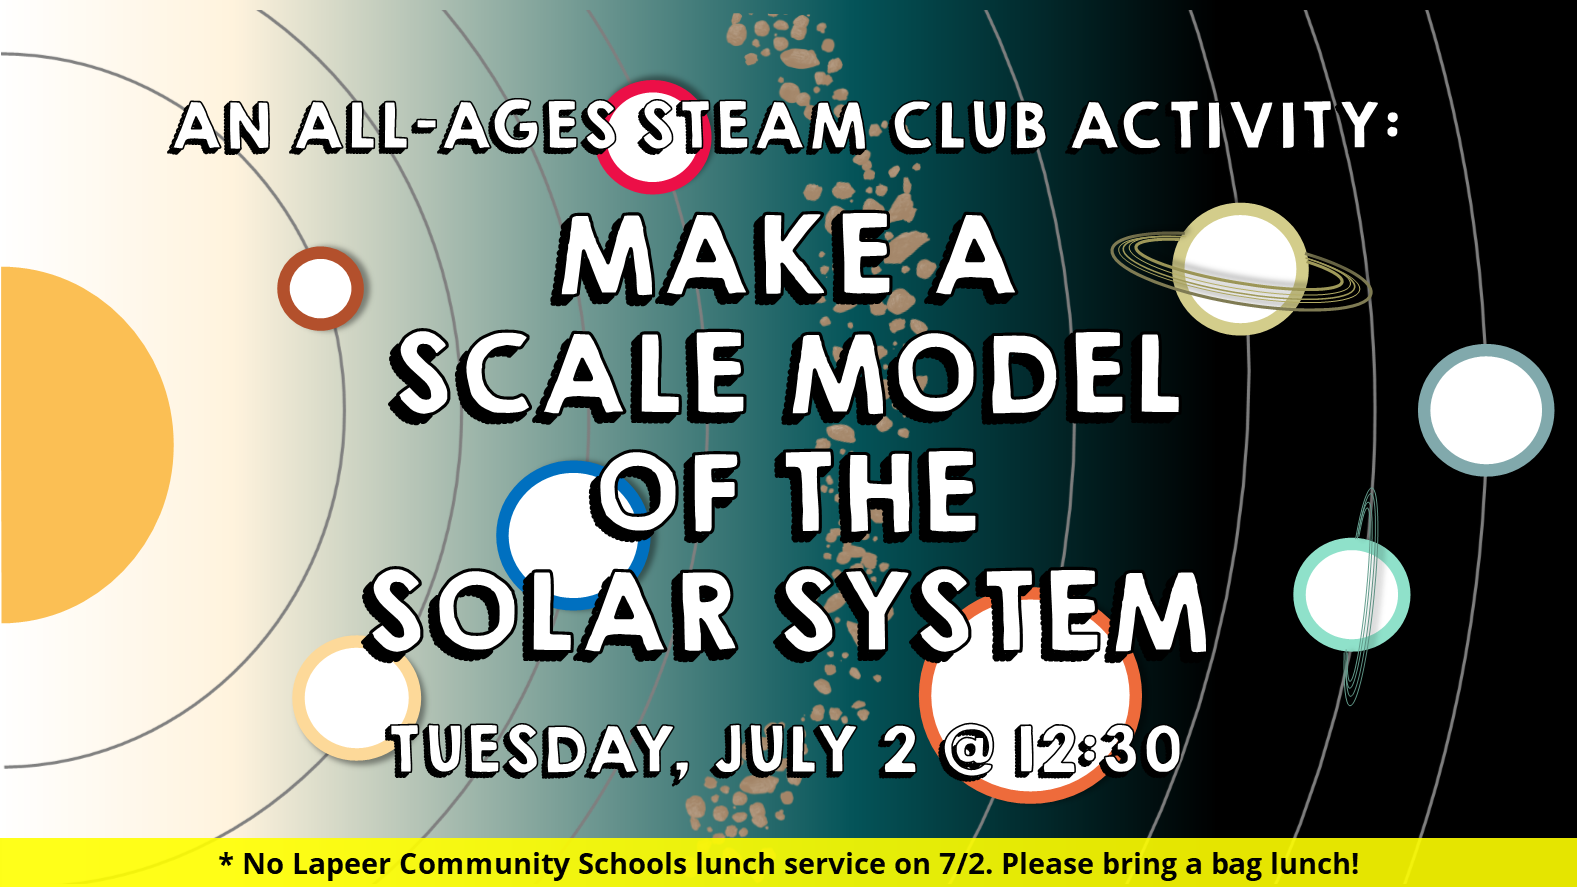 All-Ages STEAM Club - Scale Model of the Solar System